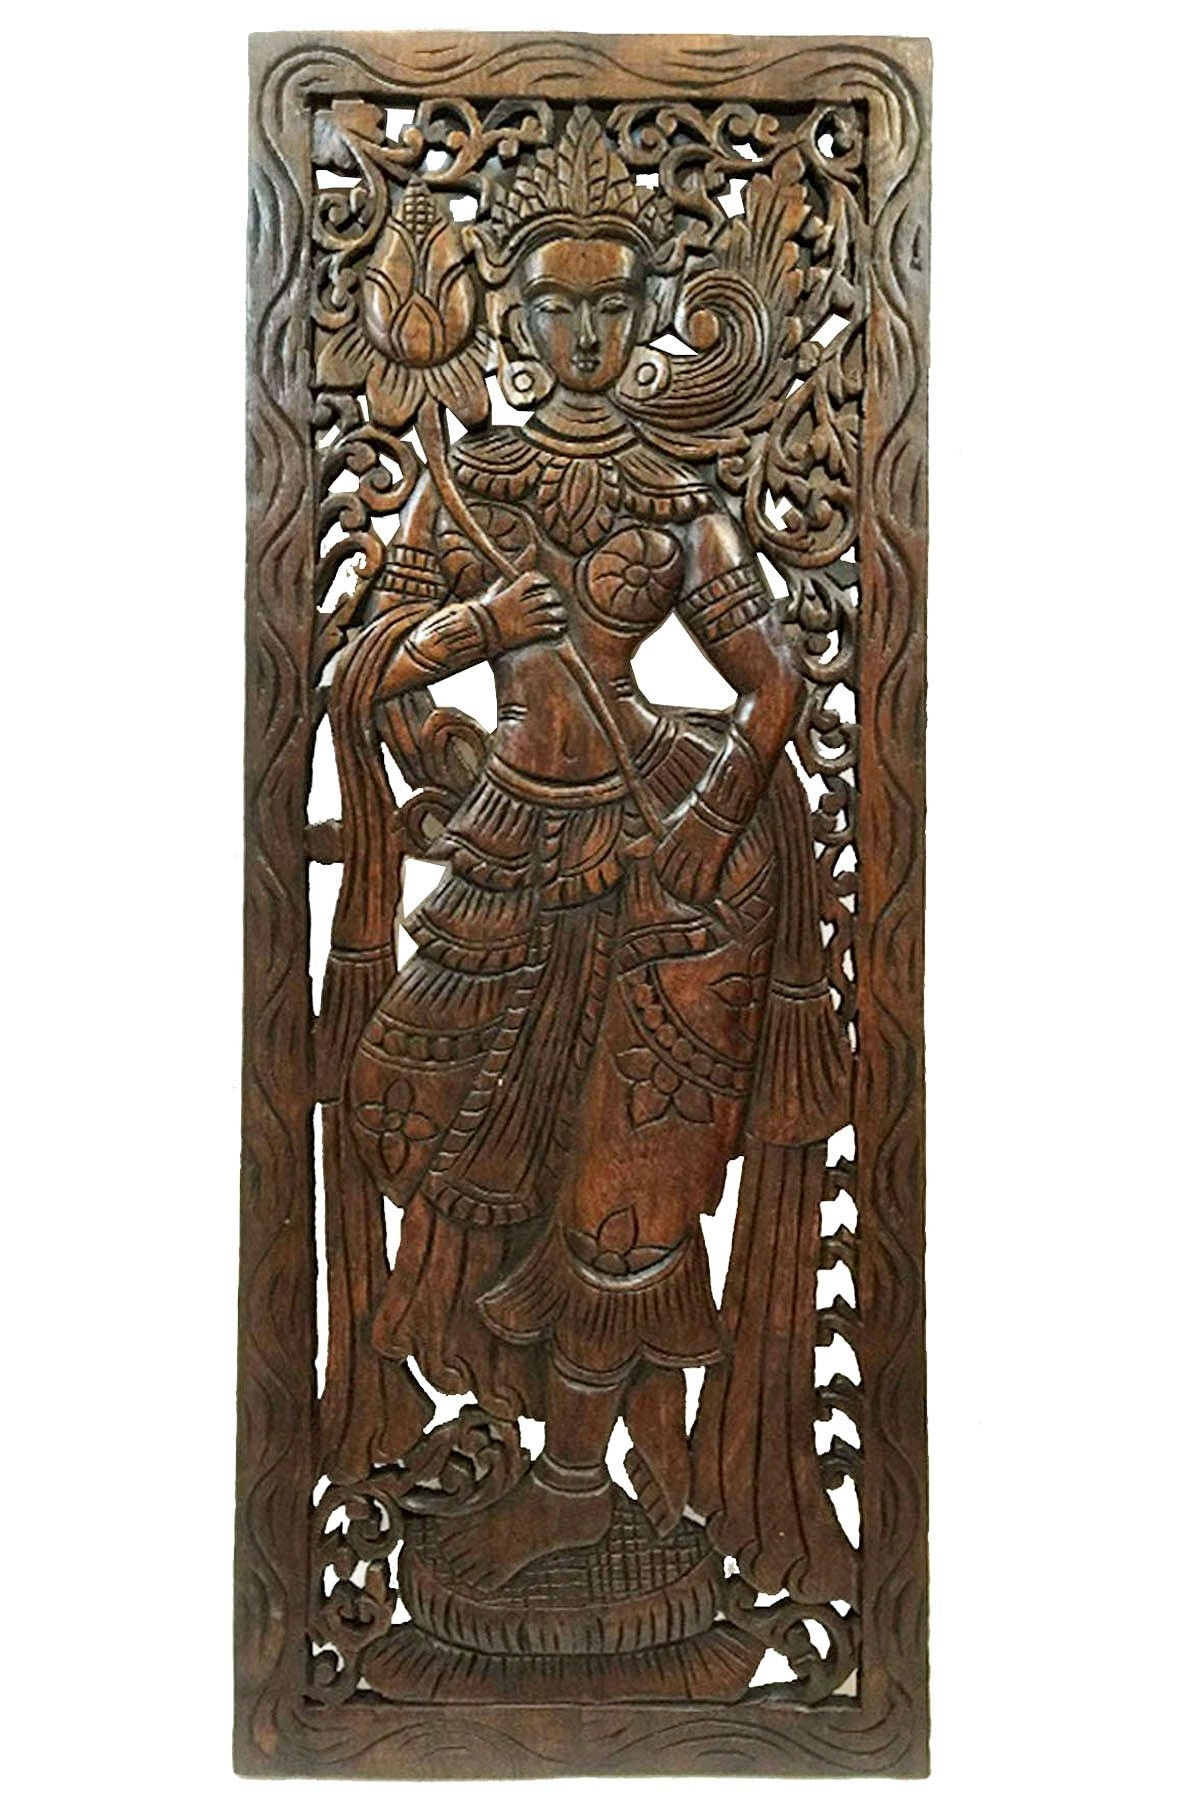 Wood Carving Wall Panel Best Of Wood Carved Wall Art Carved Wood Regarding Wood Carved Wall Art (Photo 19 of 20)